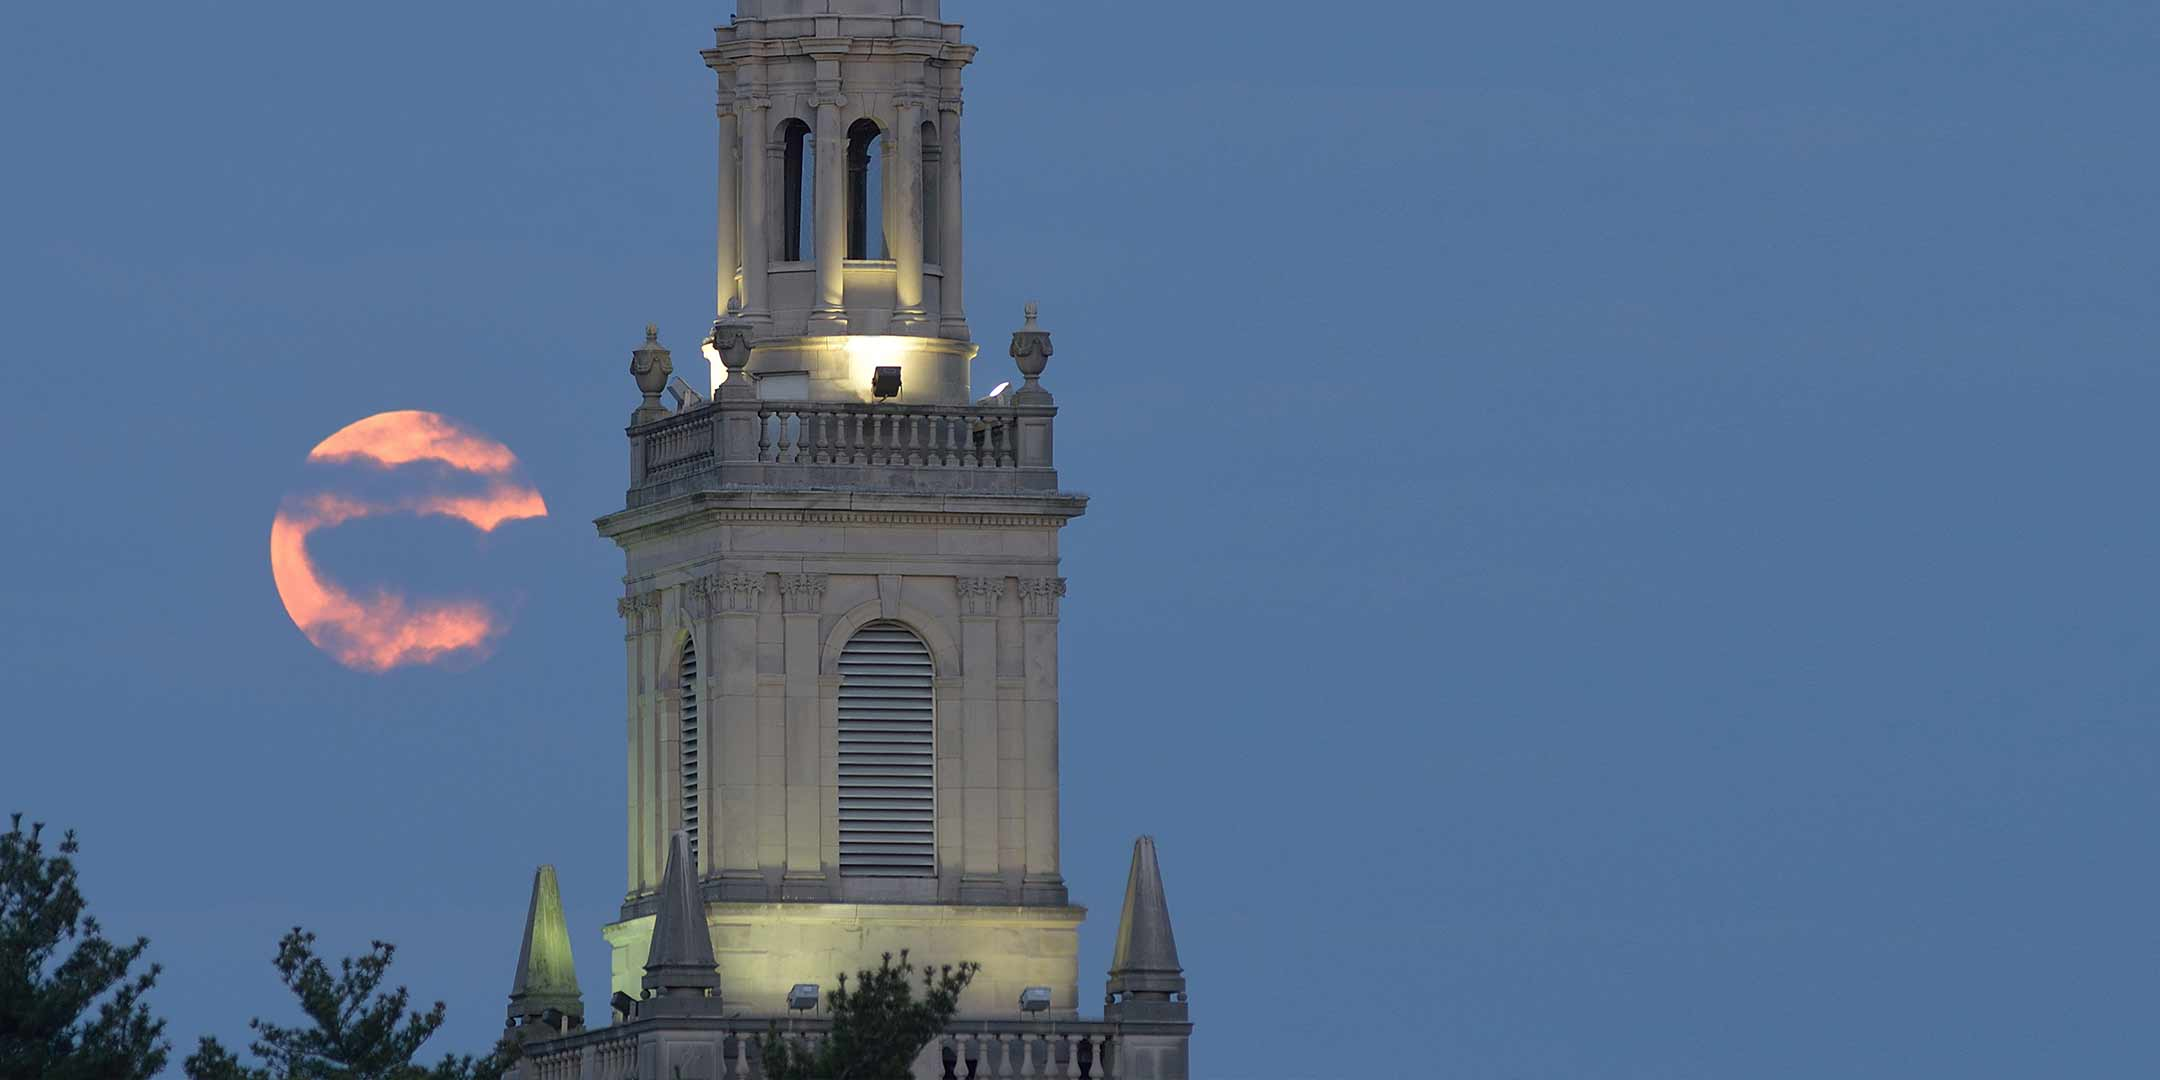 A full moon rising over Swasey Chapel